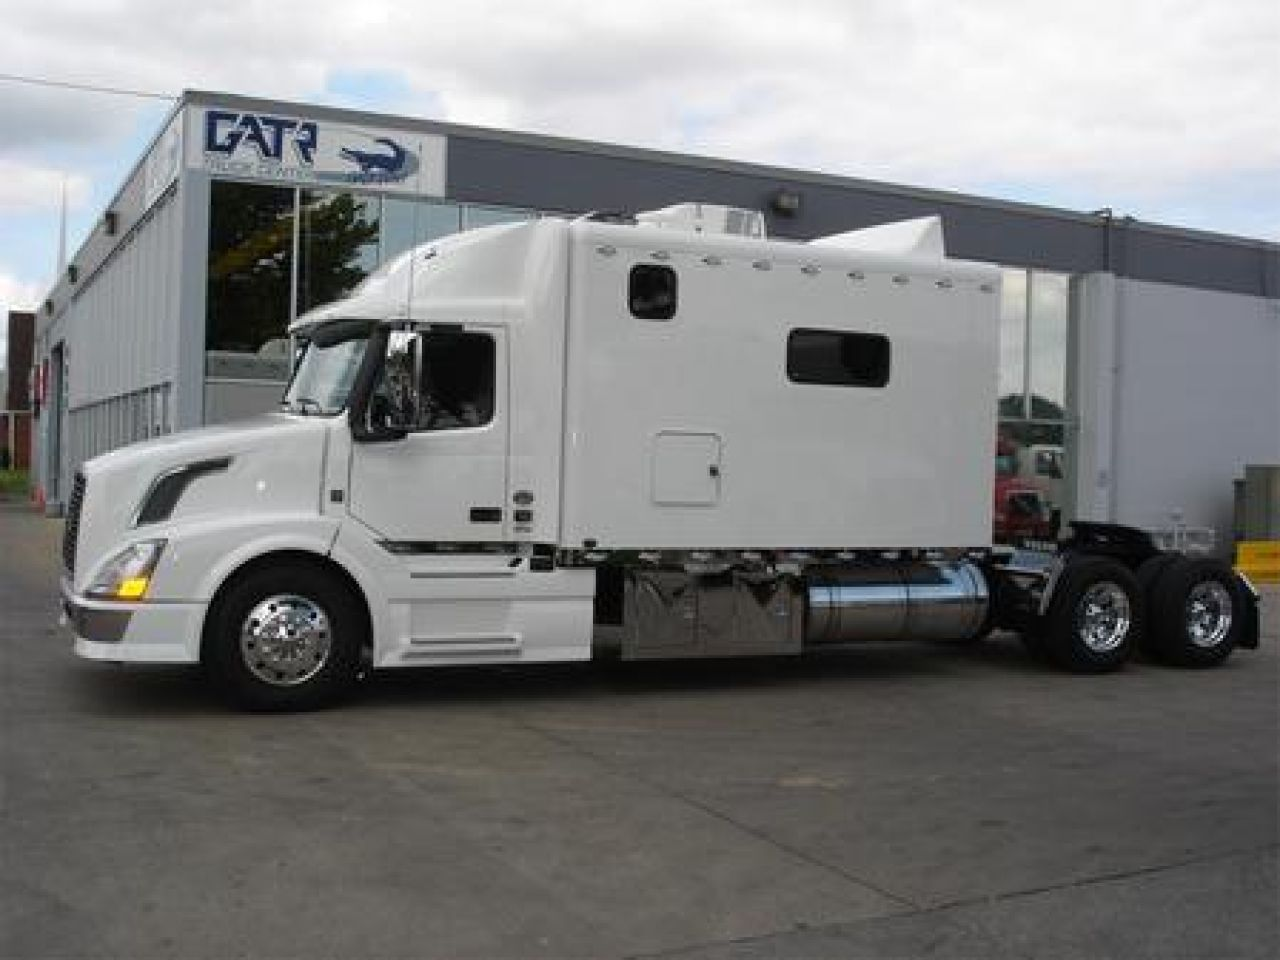 "Our featured #truck is 2014 #Volvo VNL64T-300 Sleeper Truck, Volvo XE16 Engine, 500 HP, I Shift Transmission, Air Ride Supsension, 302"" WB. Check out this week's recently added trucks at http://www.nexttruckonline.com/trucks-for-sale/All-Categories/All-Makes/All-Models/results.html?days_old-max=7 #TrucksForSale #Trucking #SemiTrucks"